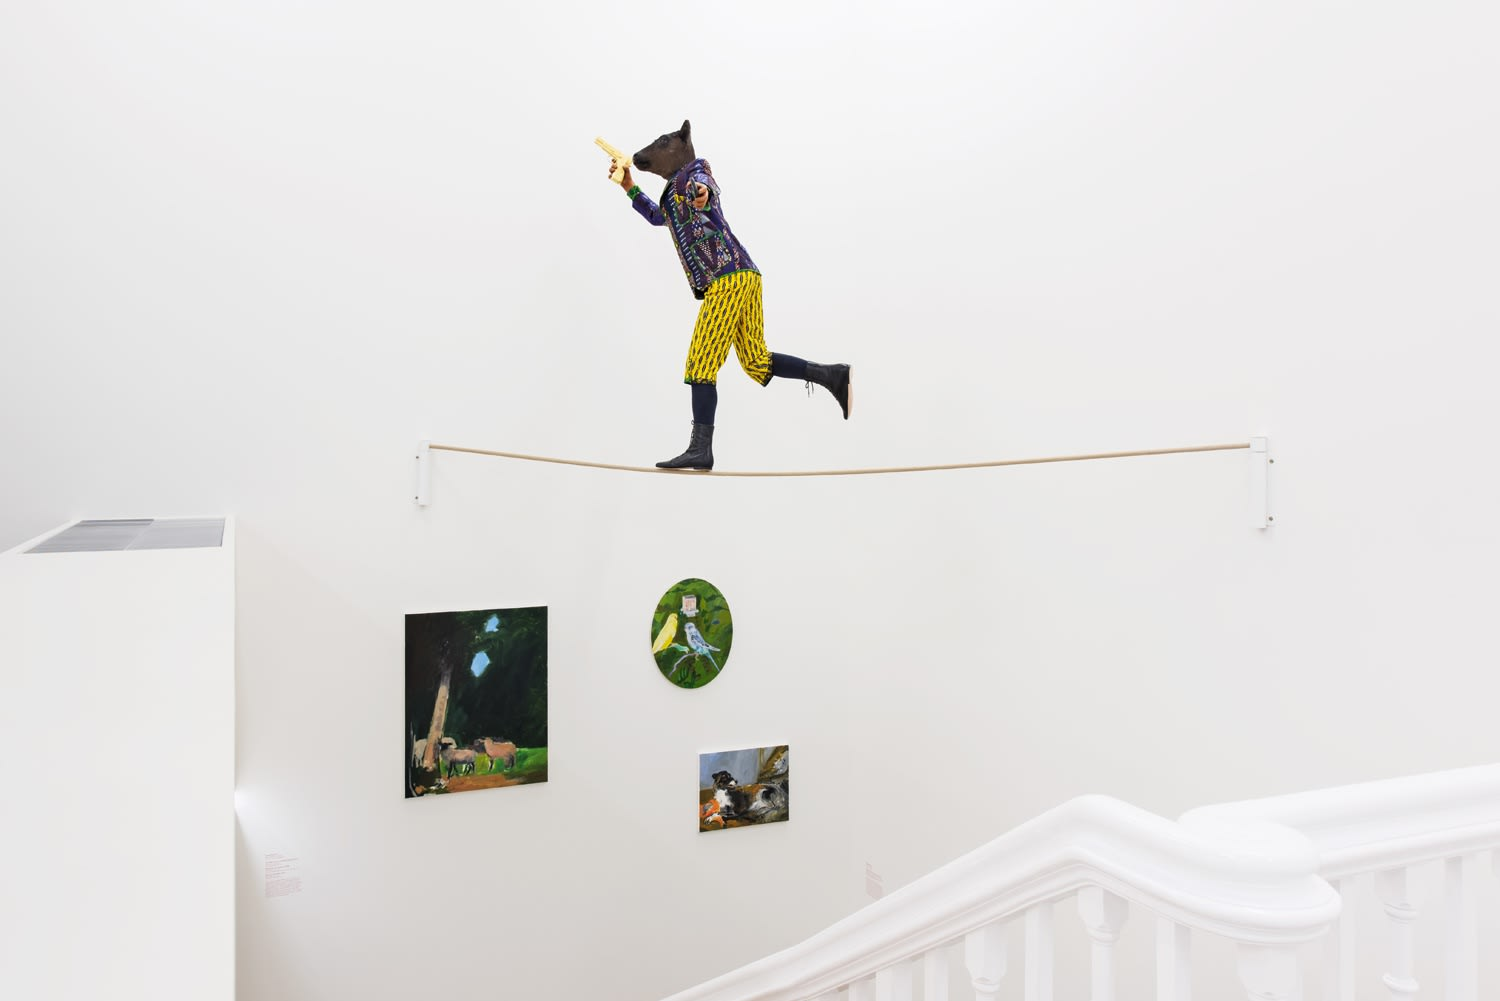 Installation view of miniature figure with a cow head and human body in wildly colored garments on a tightrope clutching a gun.